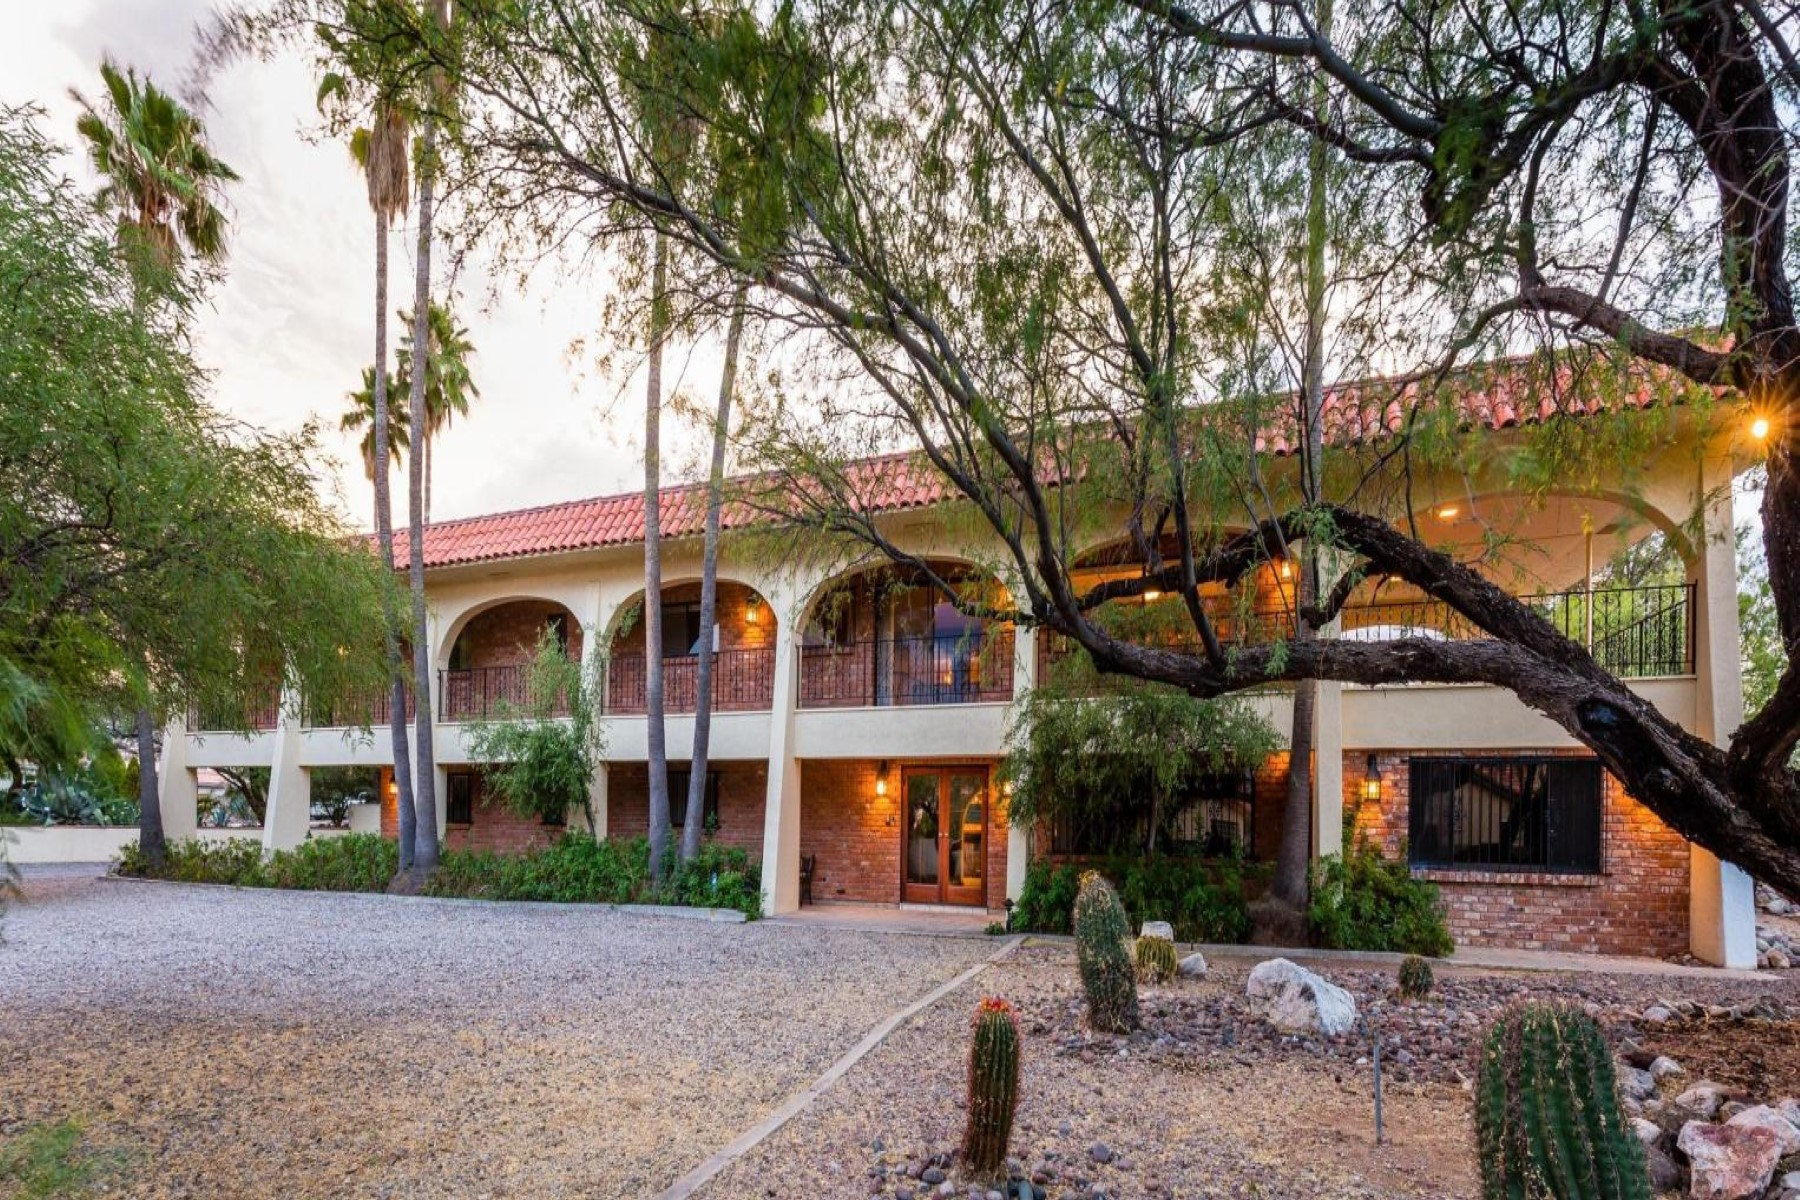 Single Family Home for Sale at Private gated compound on nearly 3 acres providing a secluded feel 260 S Sewell Place Tucson, Arizona, 85748 United States